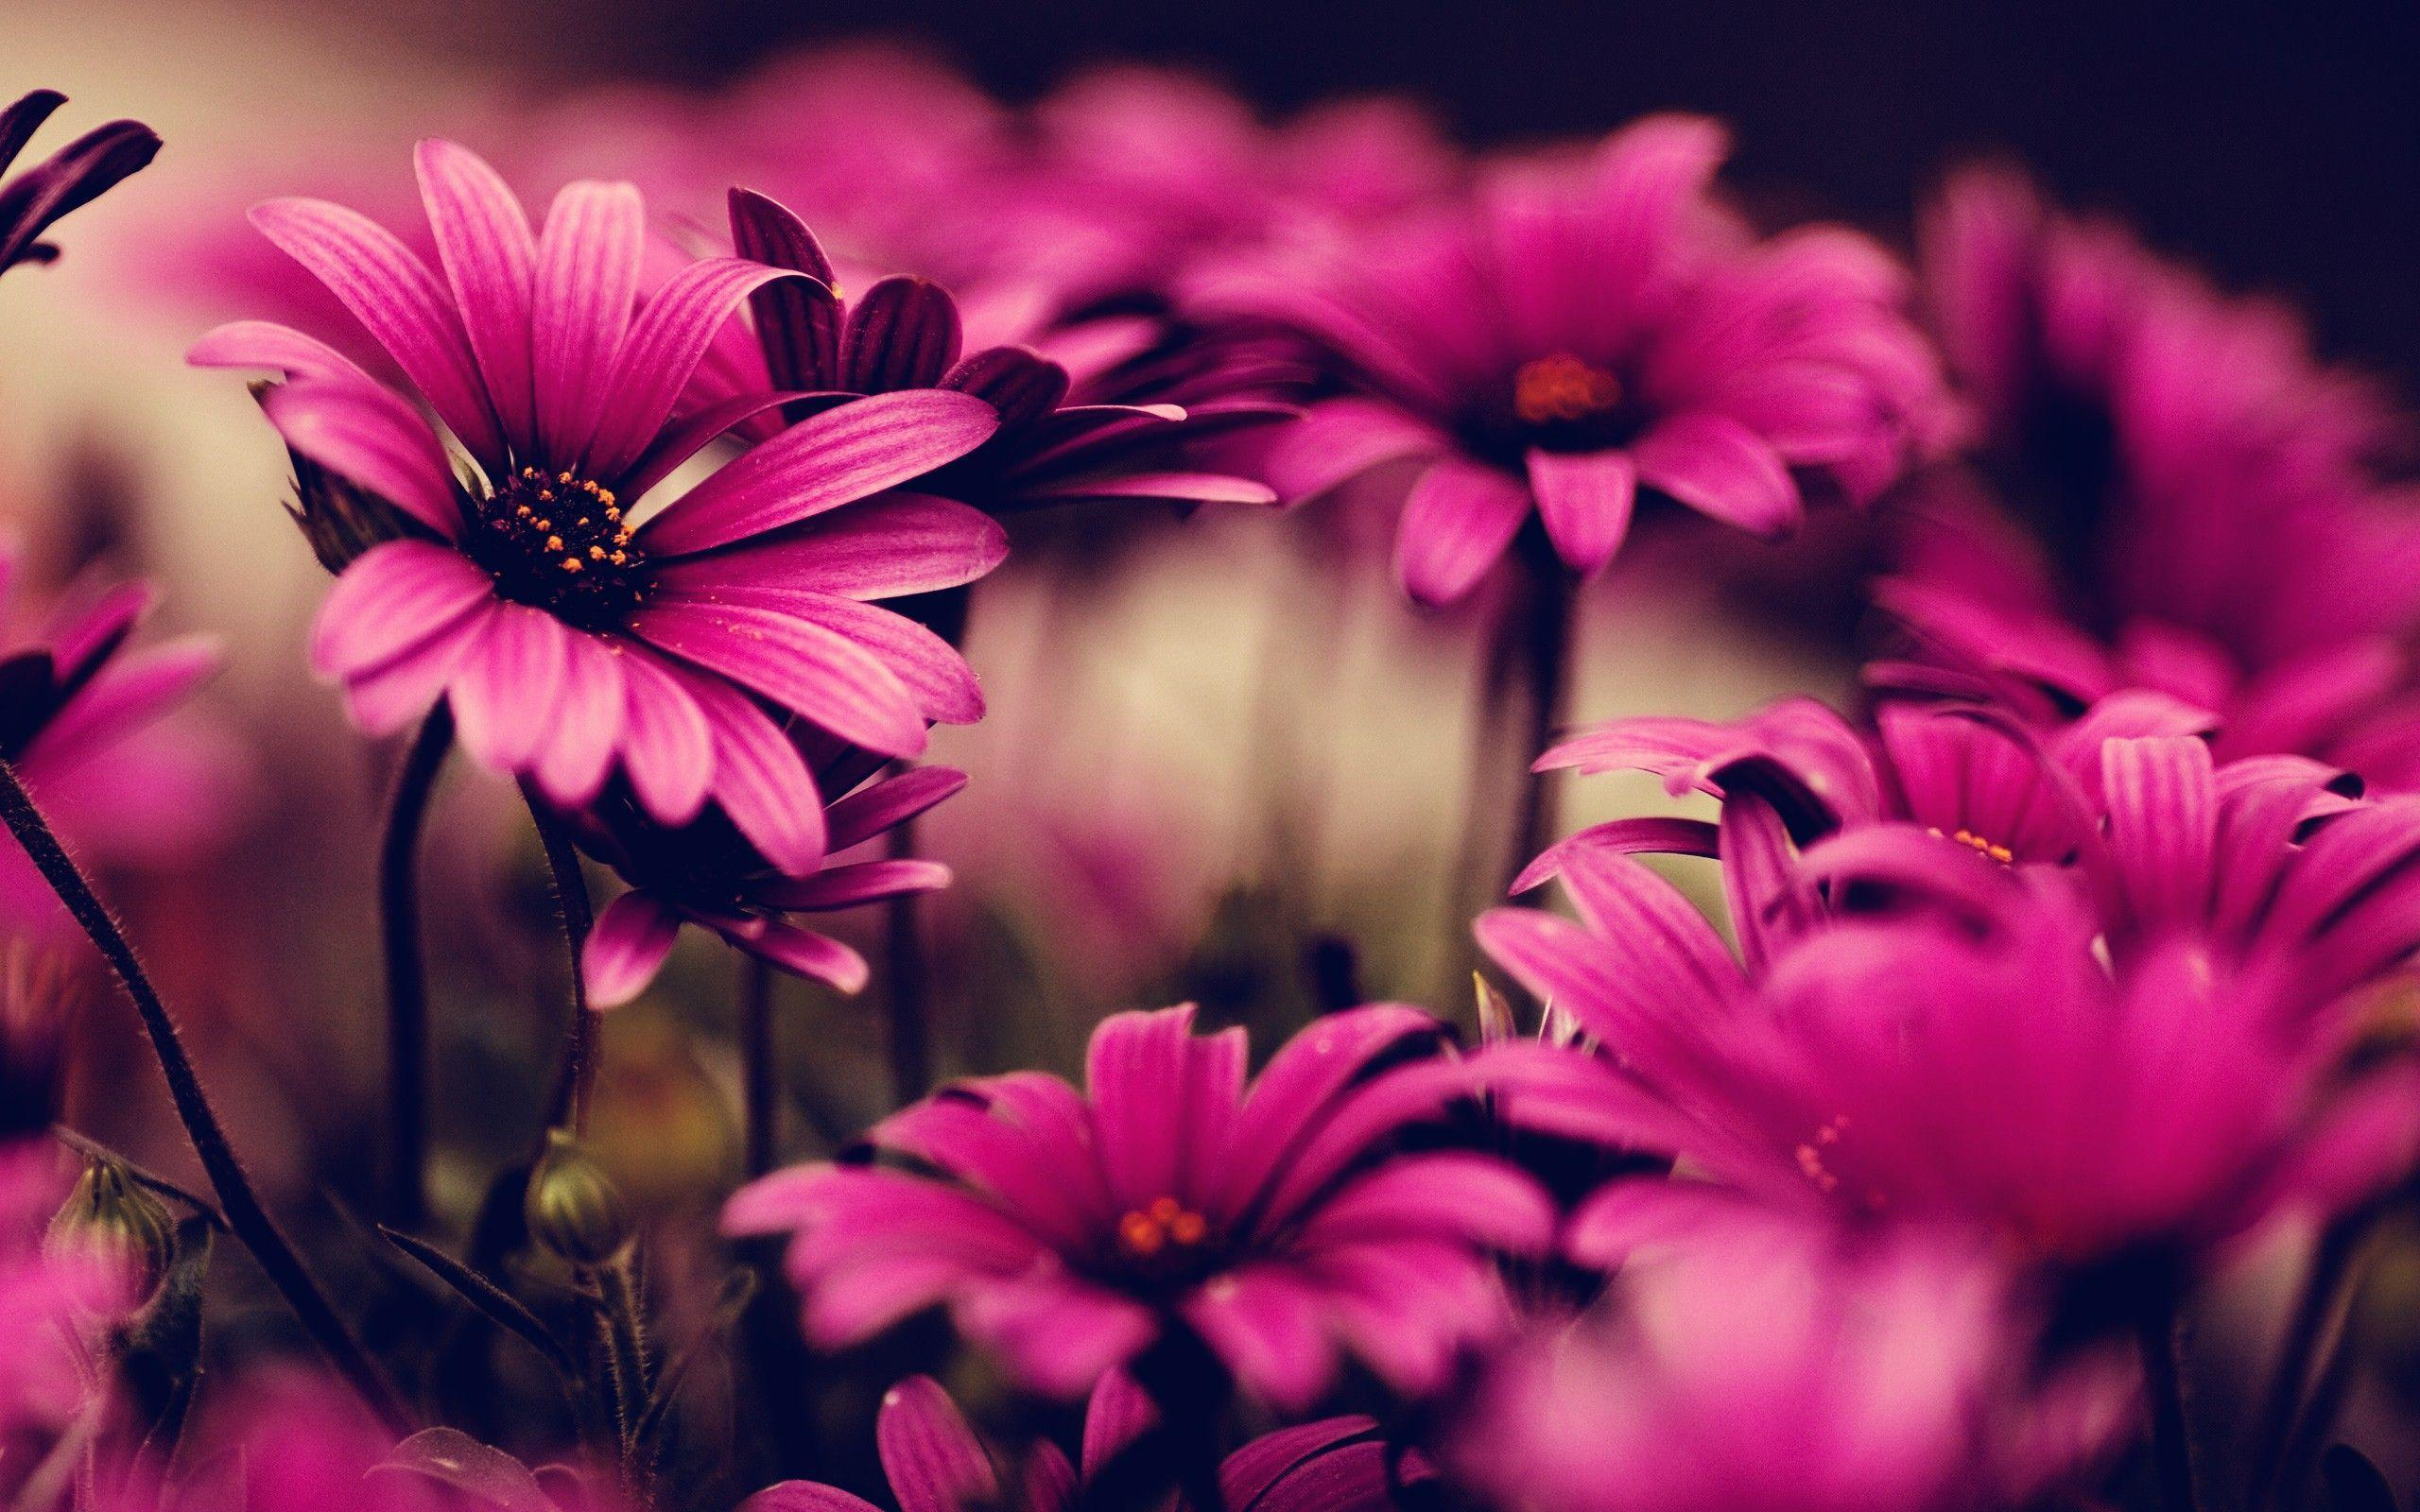 Pink Flower HD Wallpaper | Pink Flower Photos | Cool Wallpapers